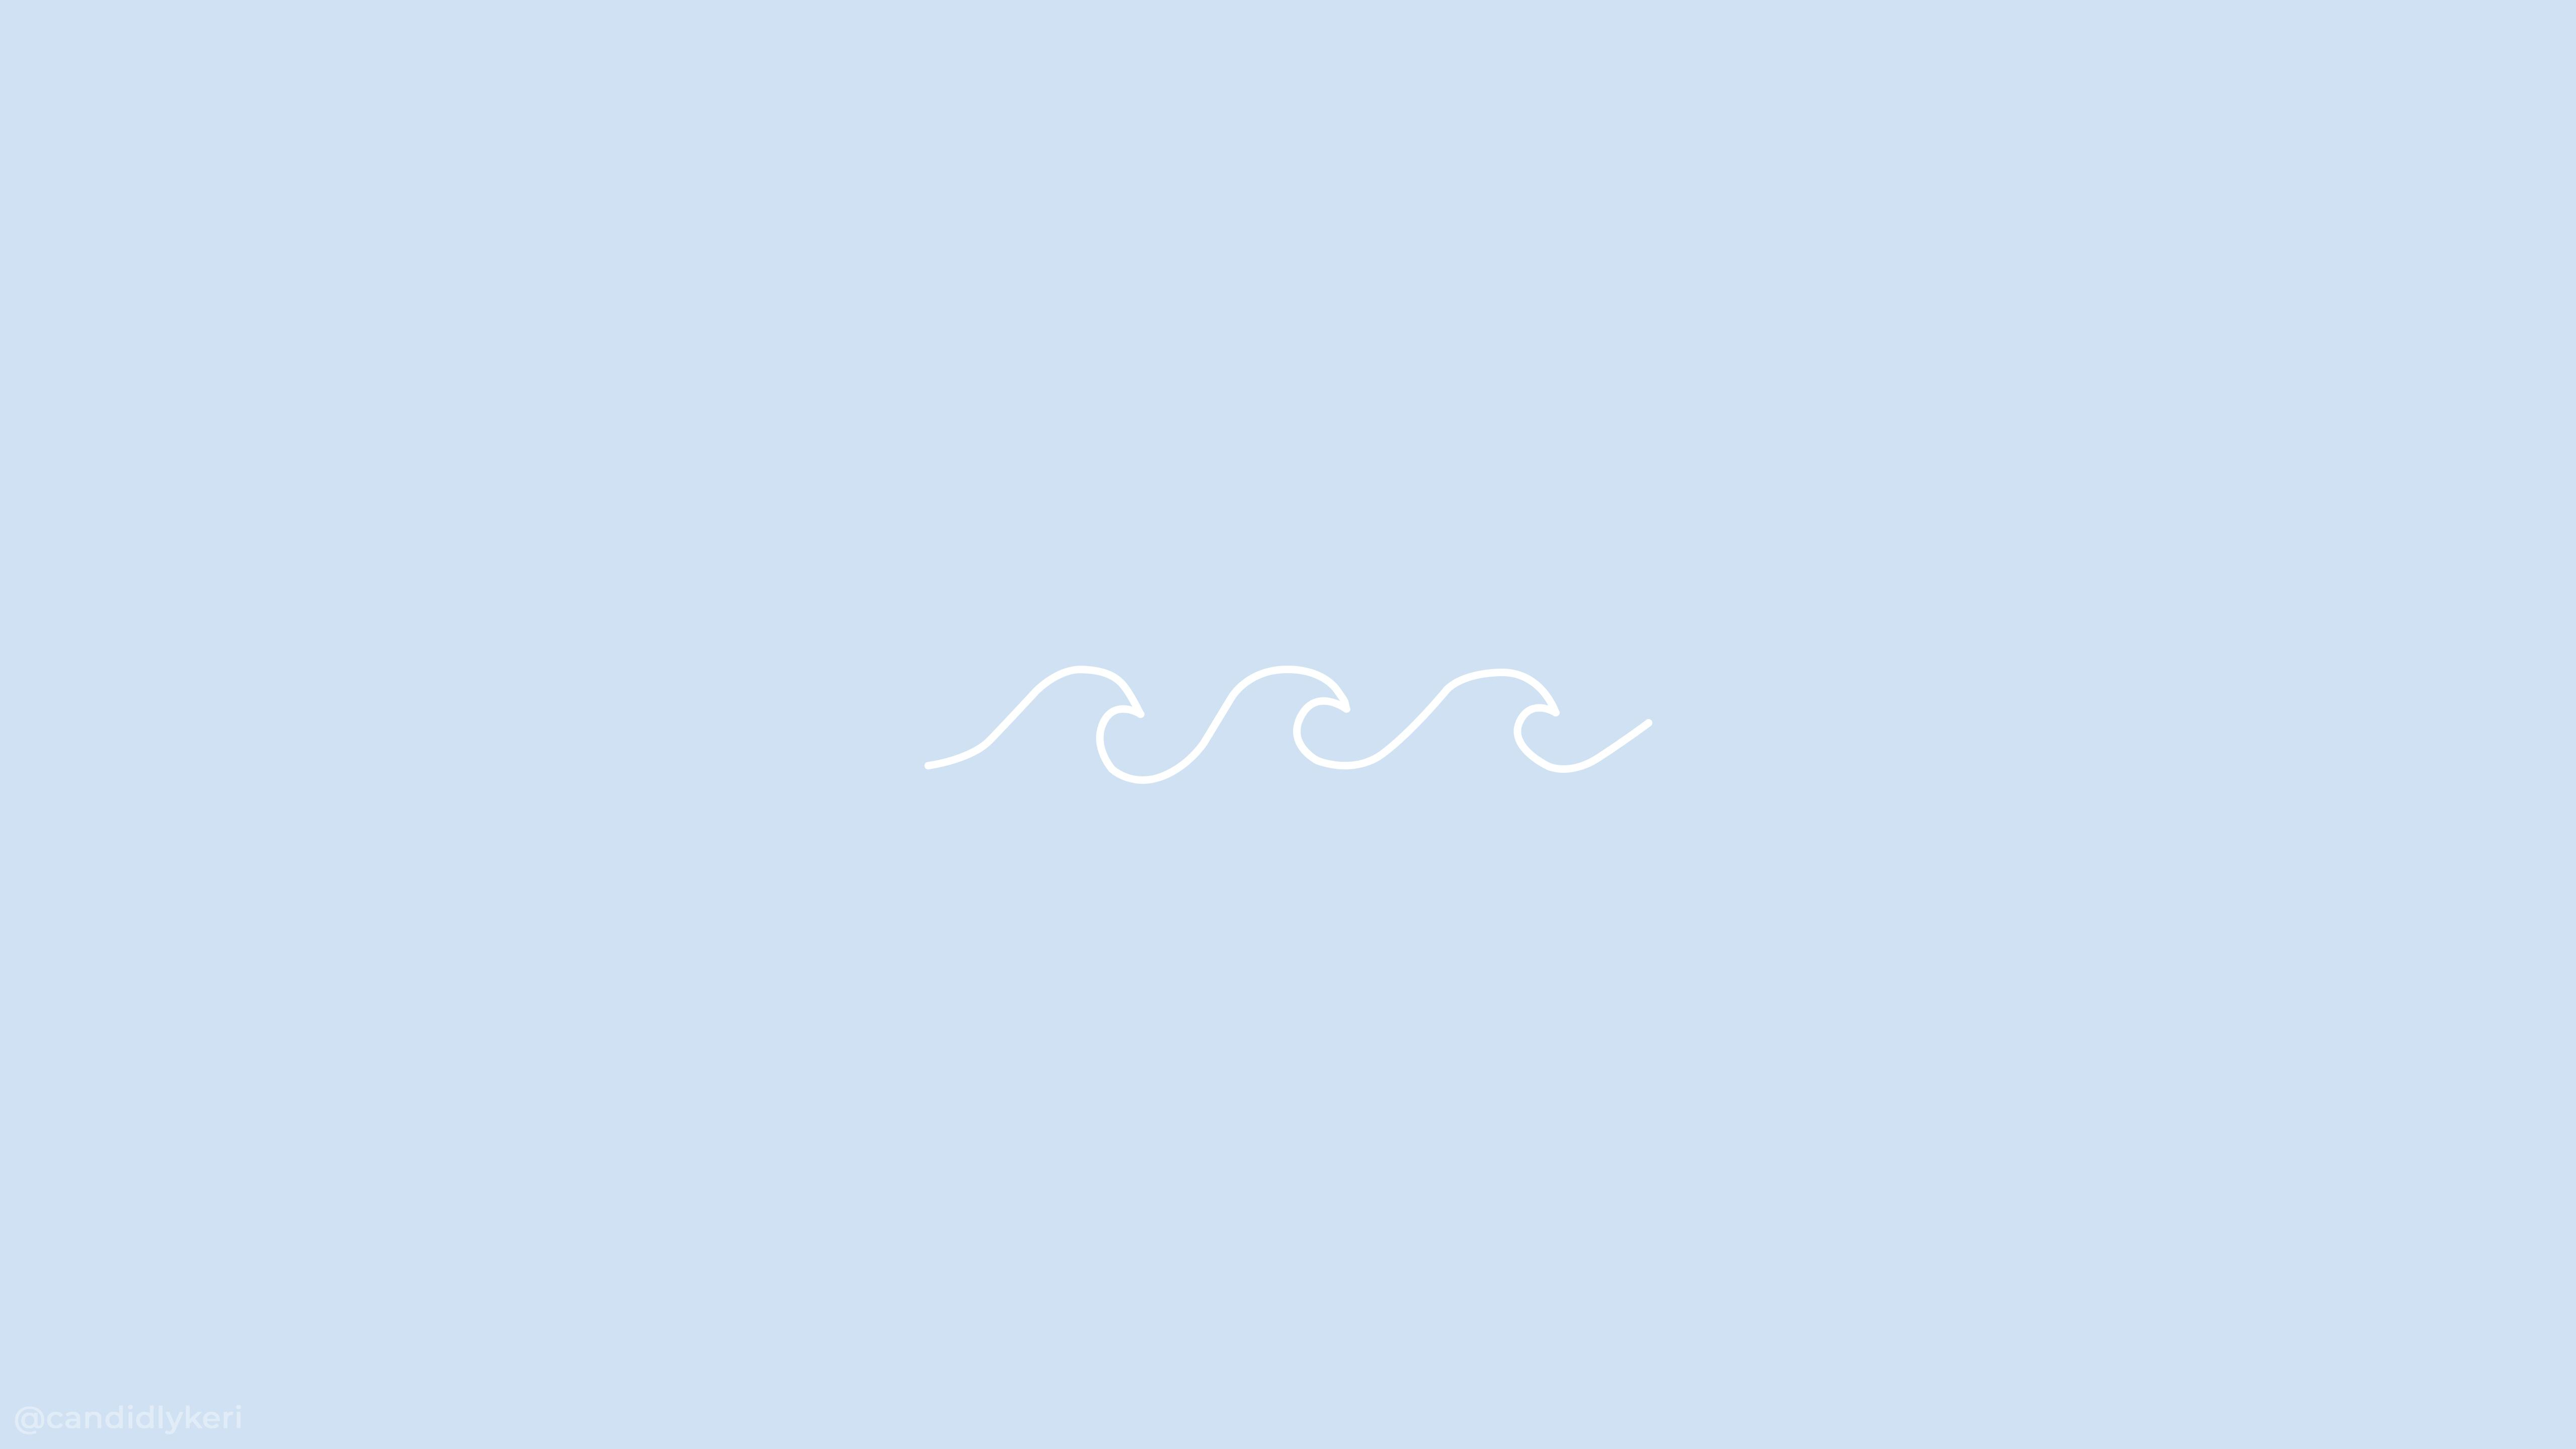 Pastel Blue Aesthetic Computer Wallpapers Top Free Pastel Blue Aesthetic Computer Backgrounds Wallpaperaccess